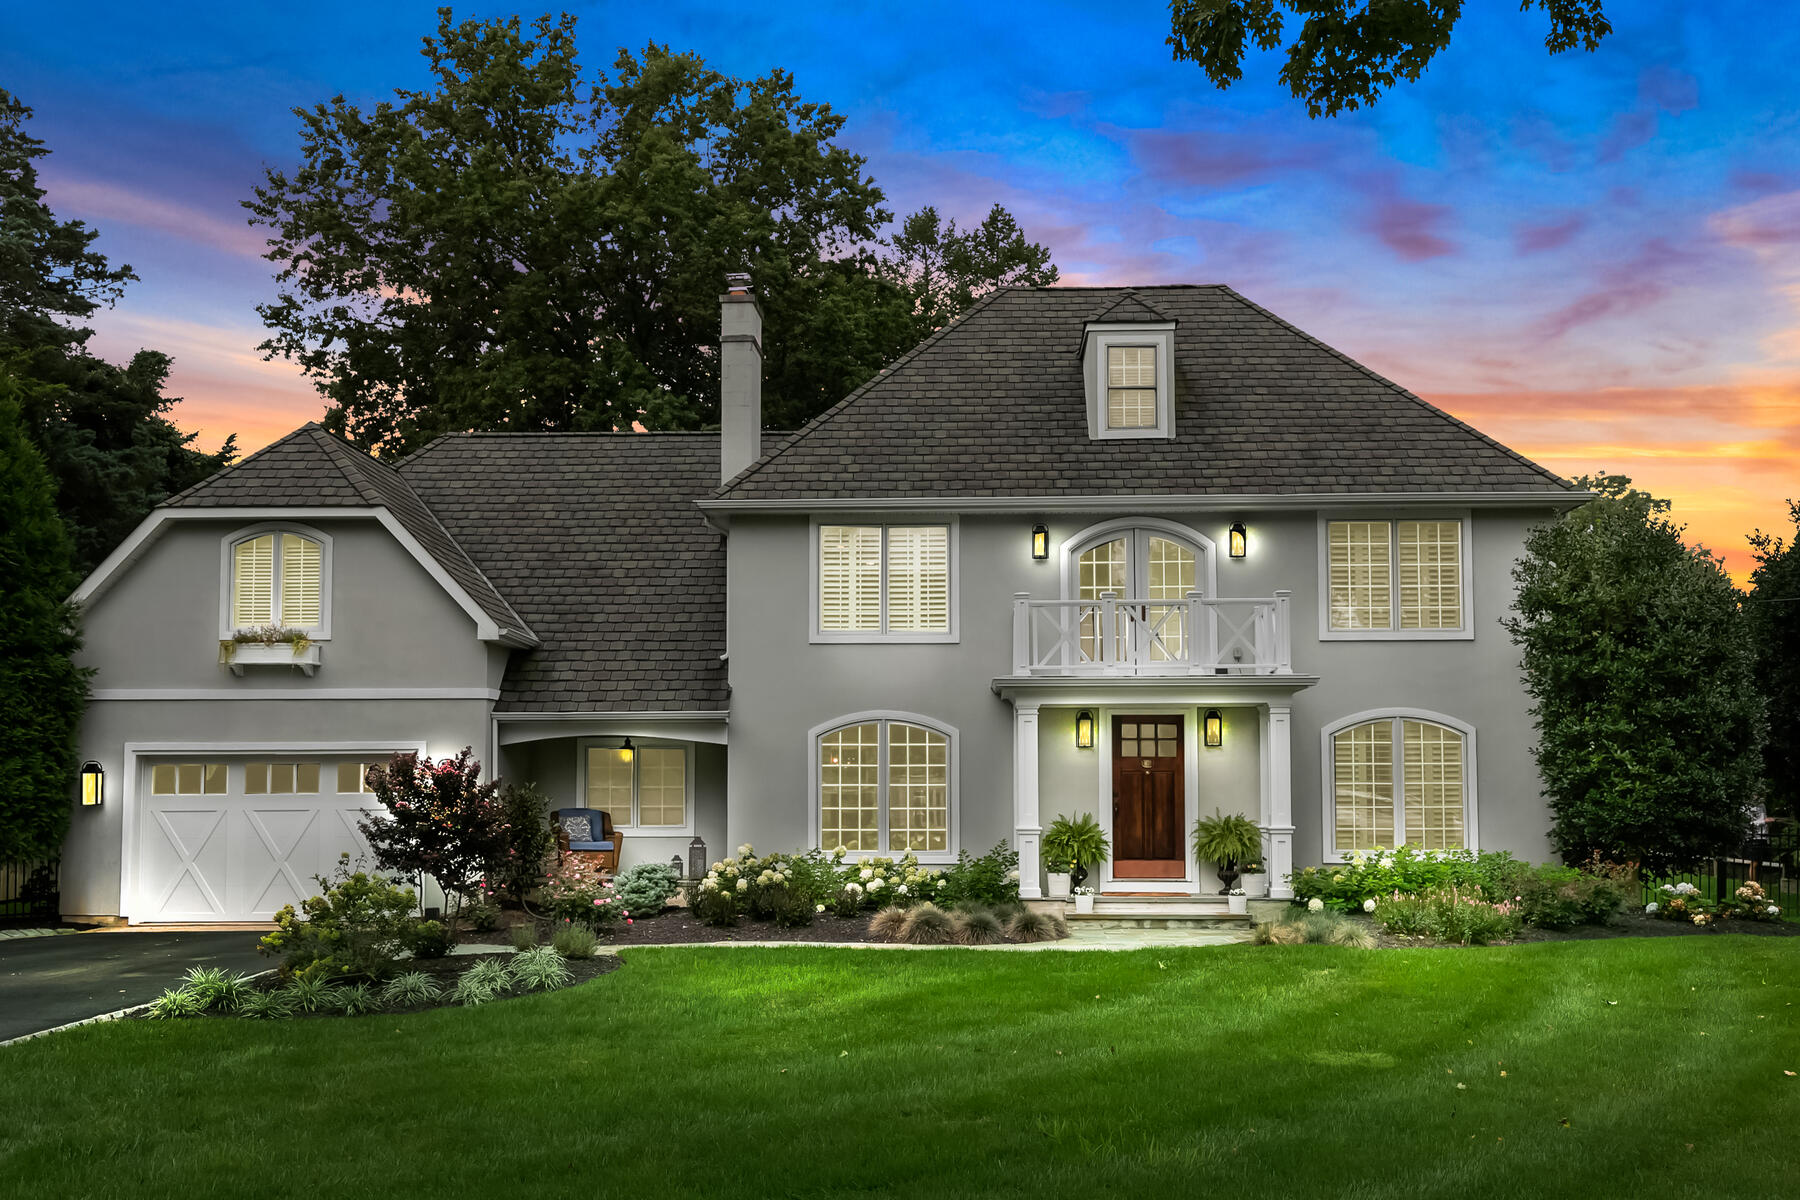 Single Family Homes for Active at Shrewsbury Perfection 42 E End Avenue Shrewsbury, New Jersey 07702 United States